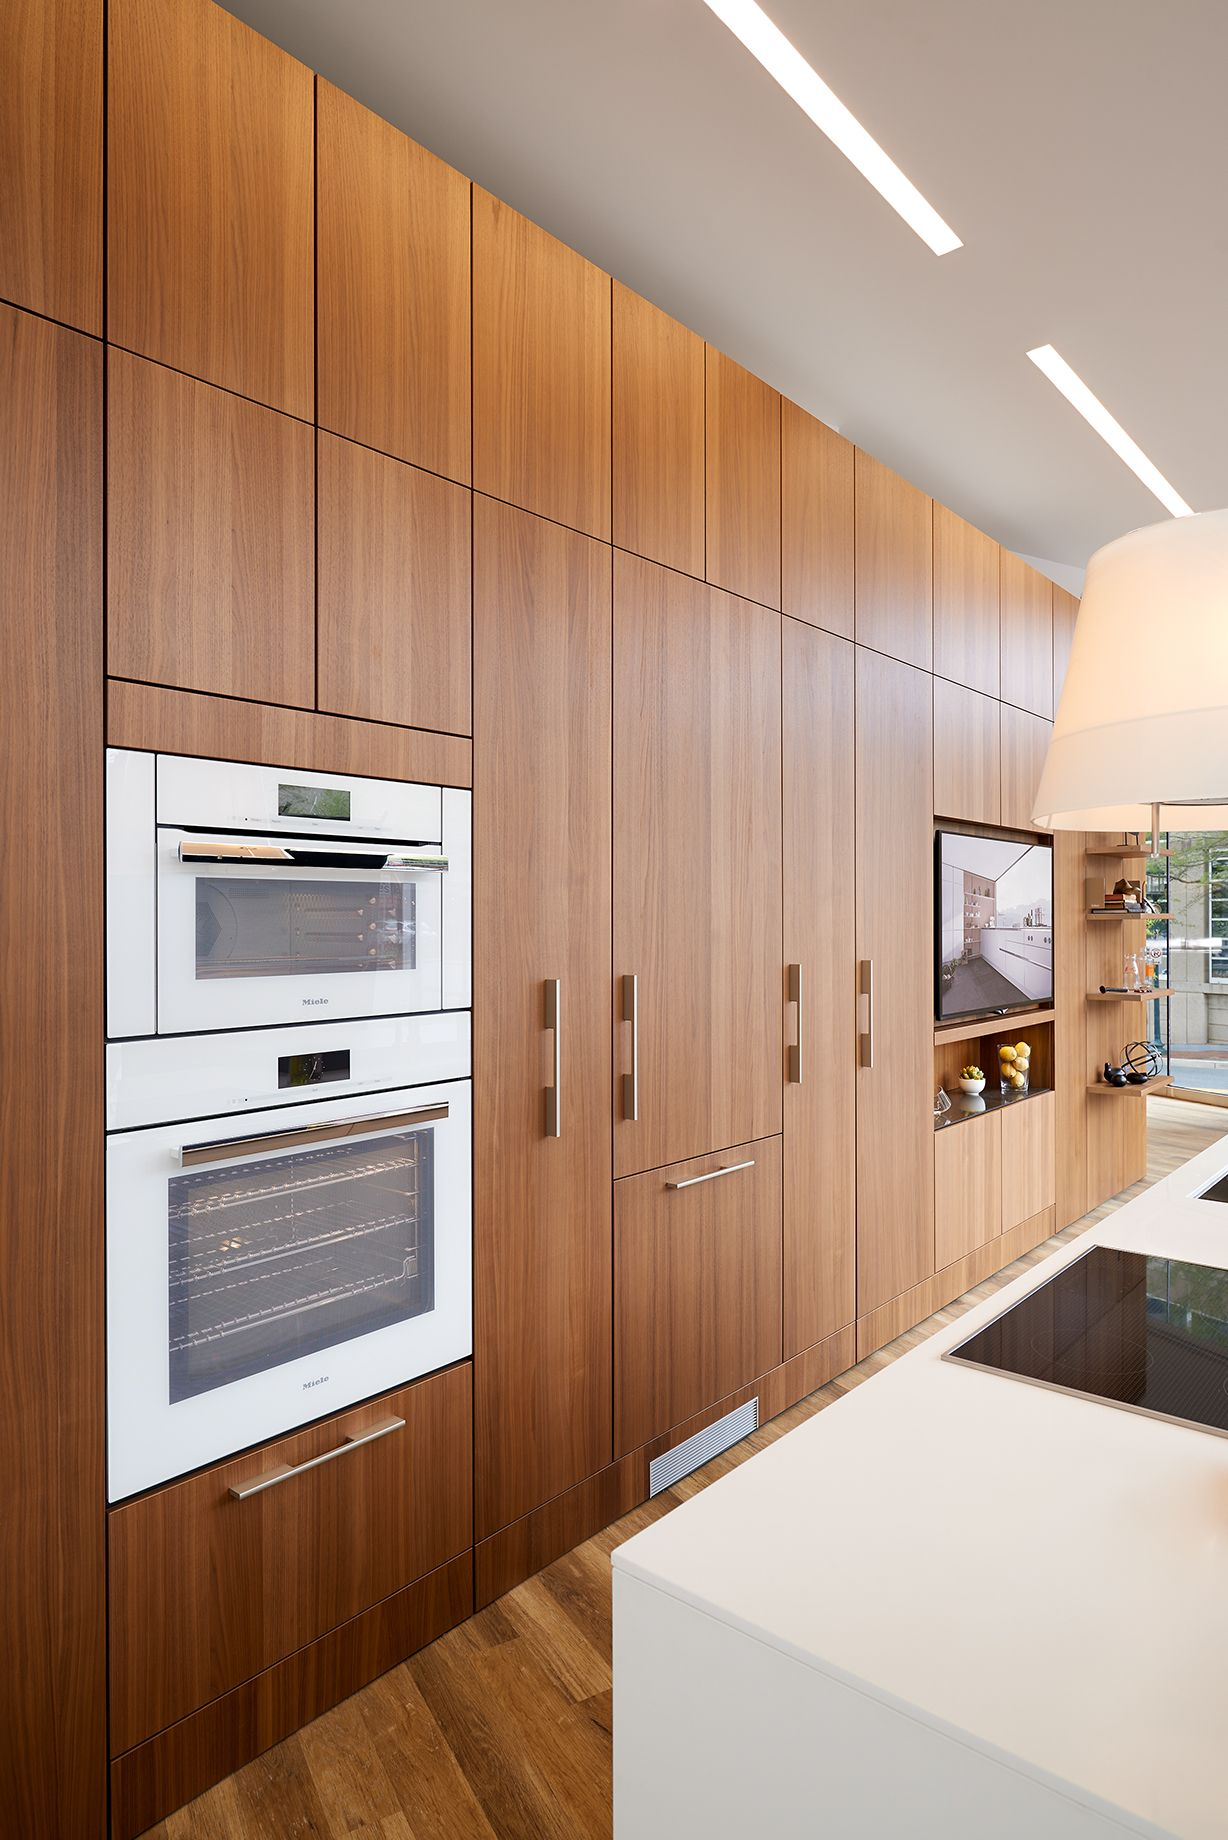 Siematic Pure Kitchen Siematic Wood Veneer Natural Walnut Cabinets Panels Siem Modern Walnut Kitchen Modern Kitchen Cabinet Design Walnut Kitchen Cabinets